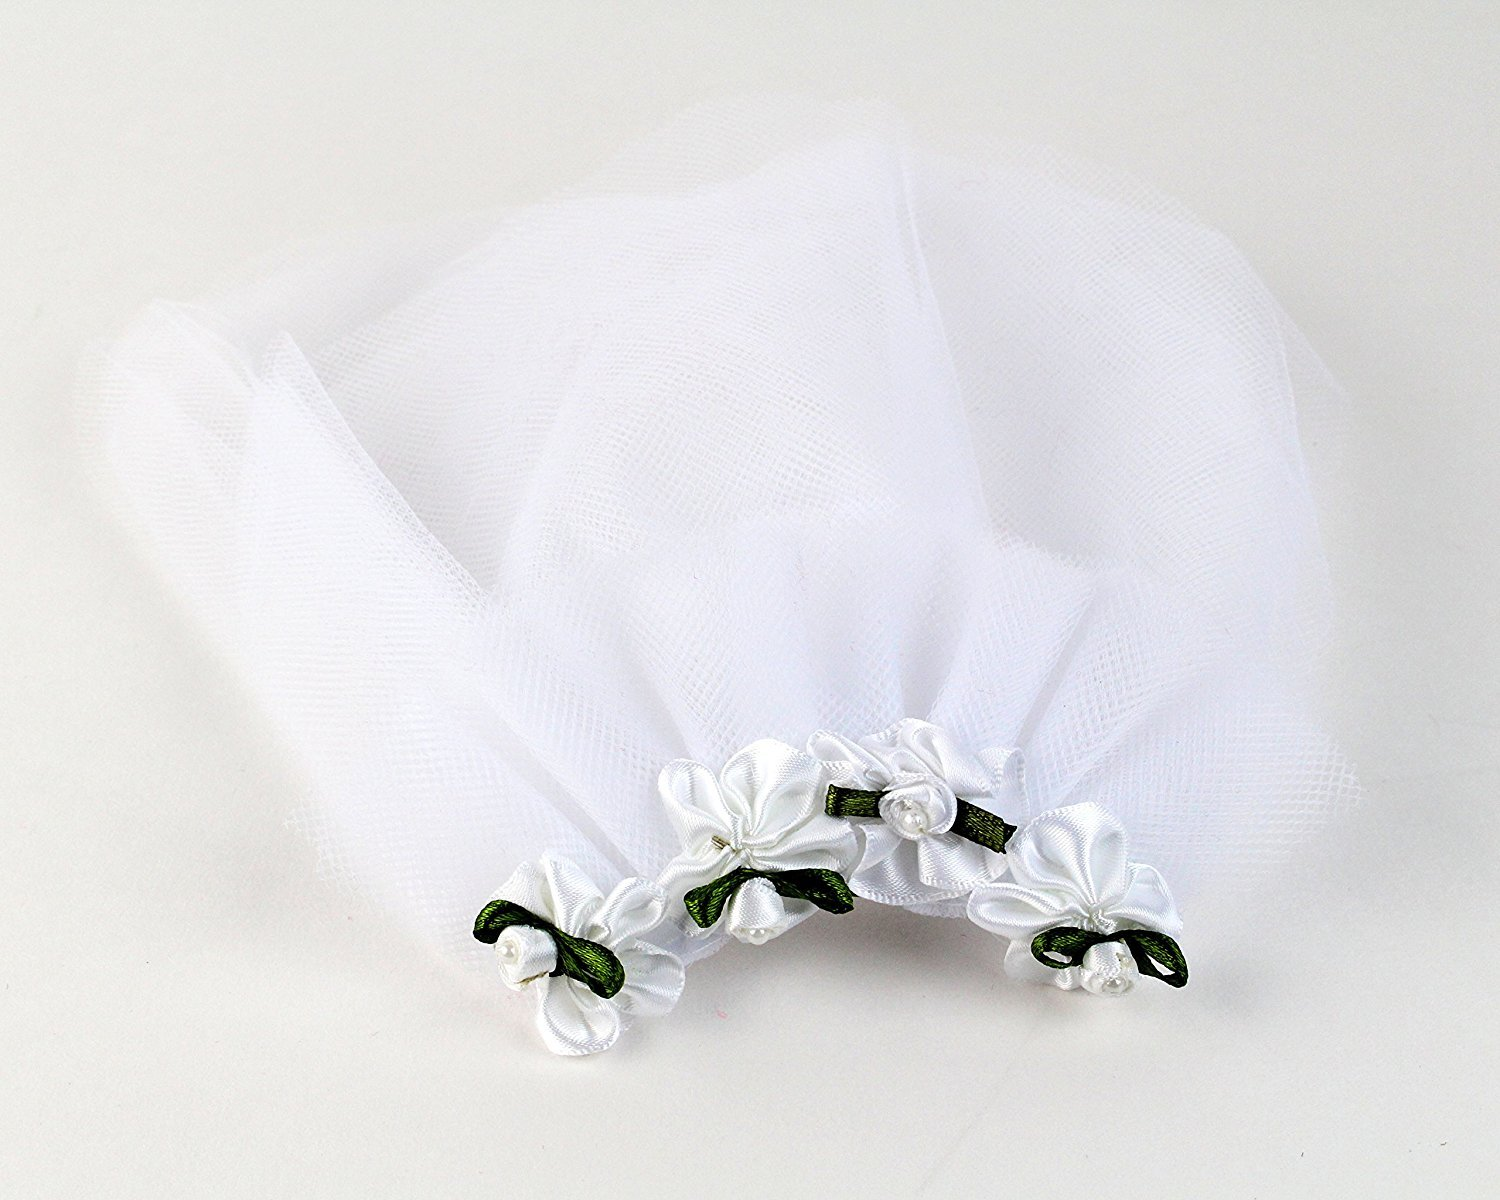 Midlee Dog Wedding Veil (Small)